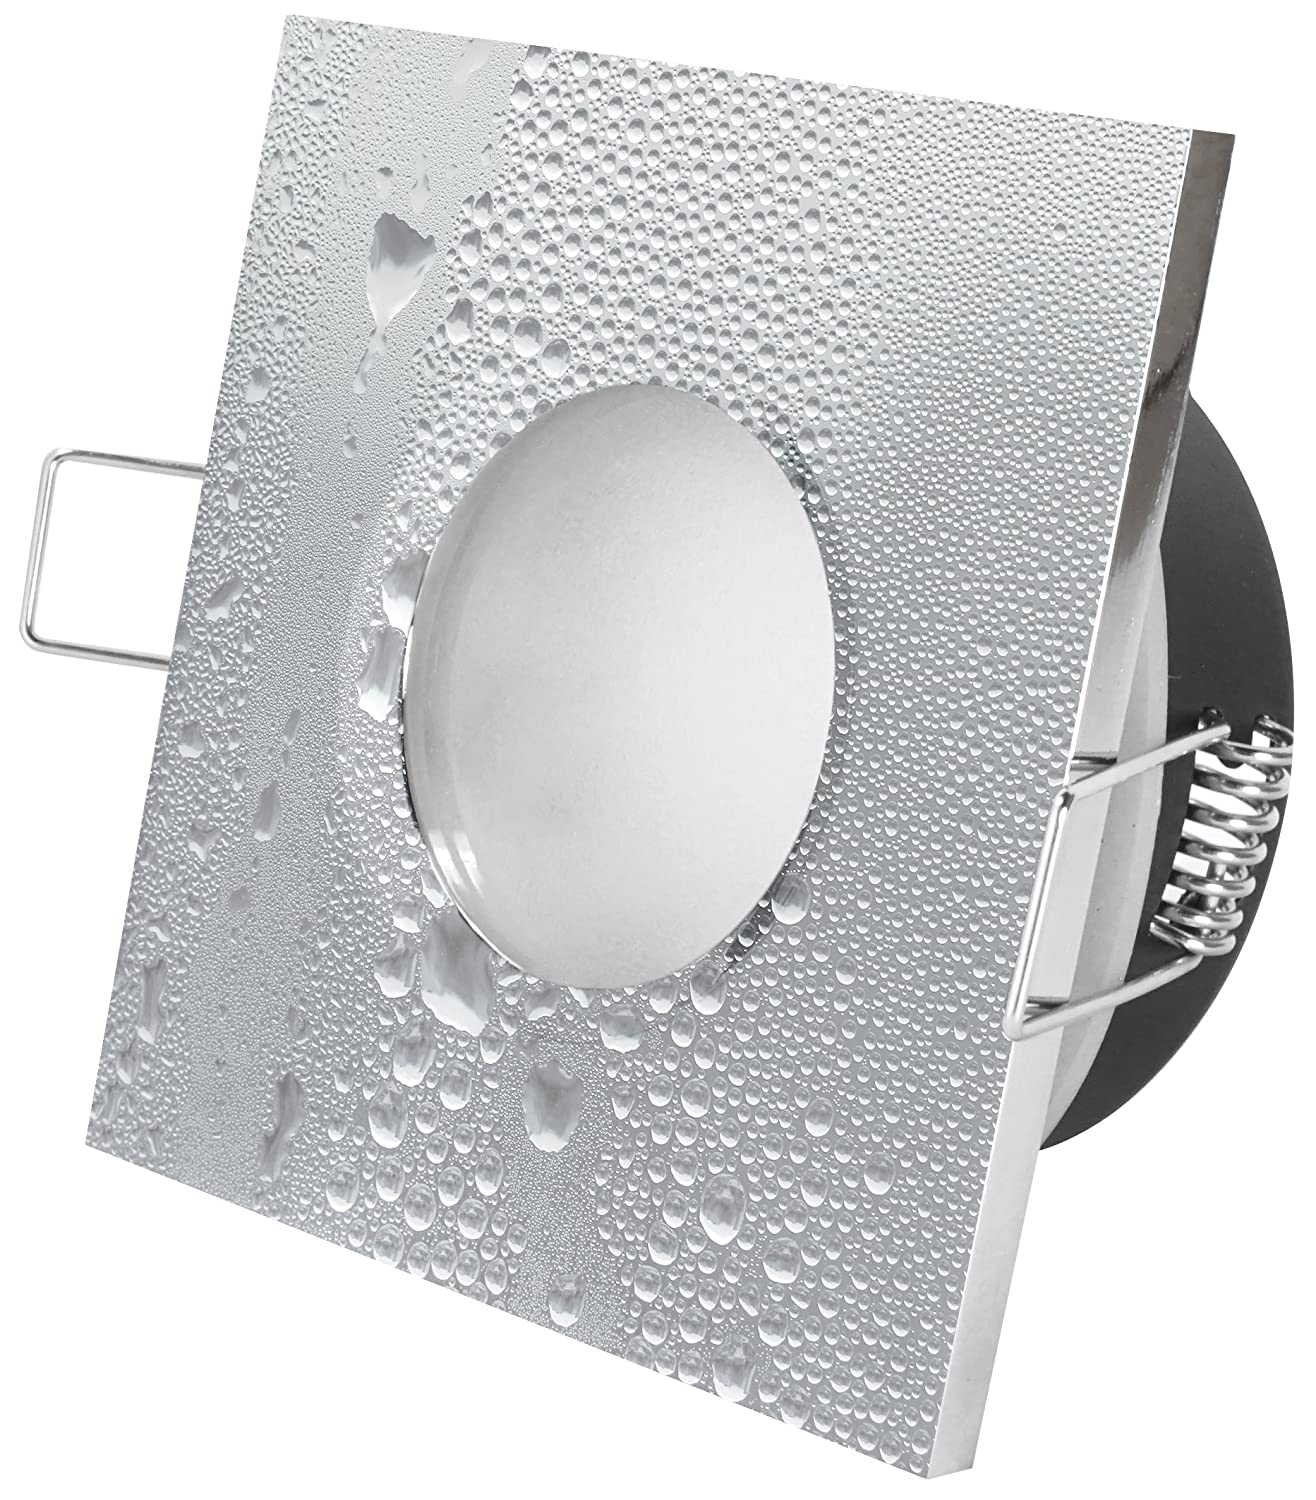 Ip65 Bathroom Recessed Downlight Square Chrome For 50 Mm Led And Wiring Up Downlights Halogen Bulbs Gu10 230 V Gu53 12 Socket Awning Cellar Shower